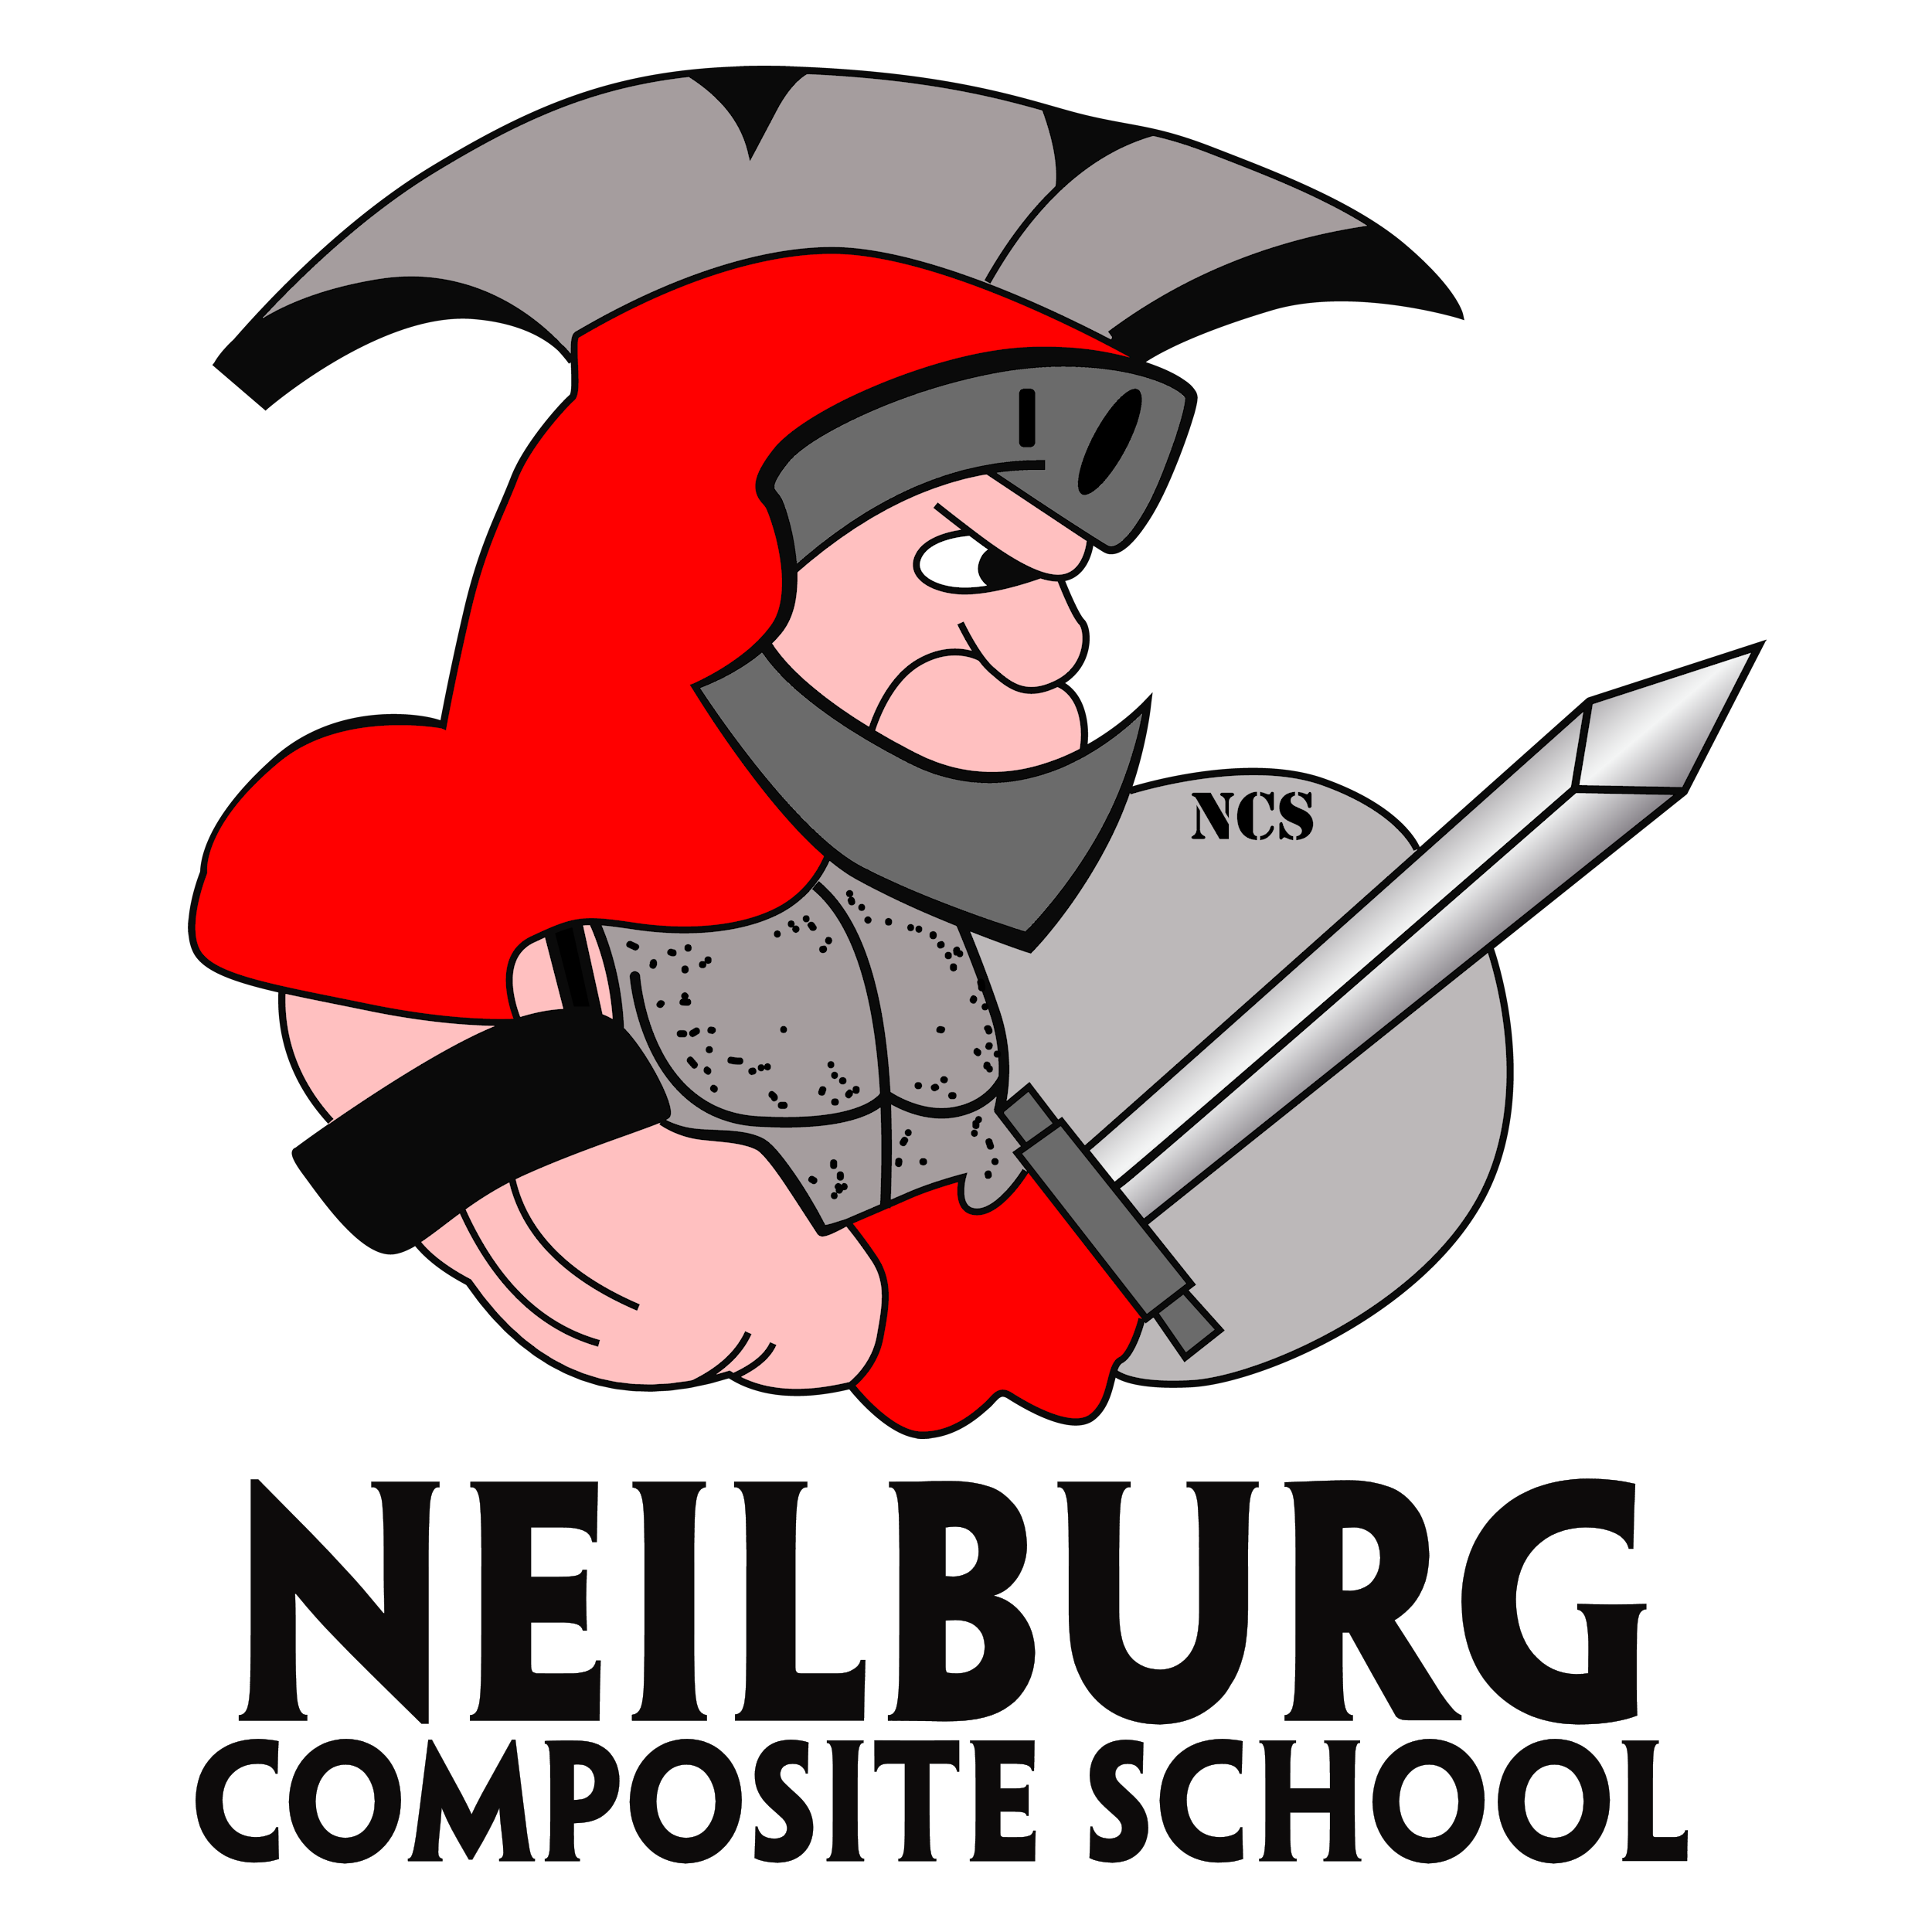 Welcome to our school clipart image transparent library Neilburg Composite School - Neilburg Composite School image transparent library